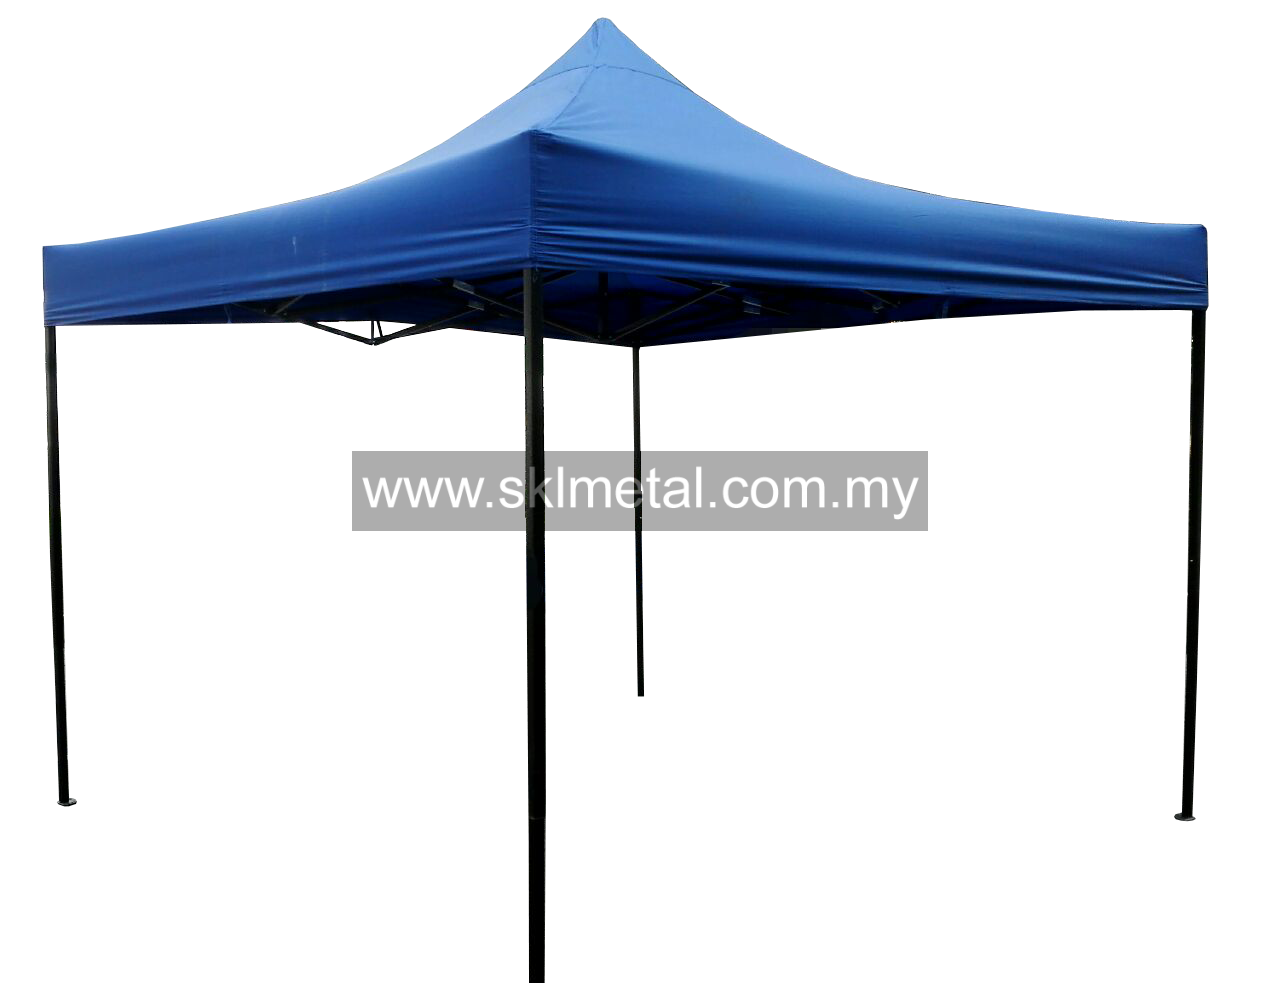 CANOPY STAND (1)  sc 1 st  SKL Metal Systems Sdn. Bhd. & CANOPY STAND (1) - SKL